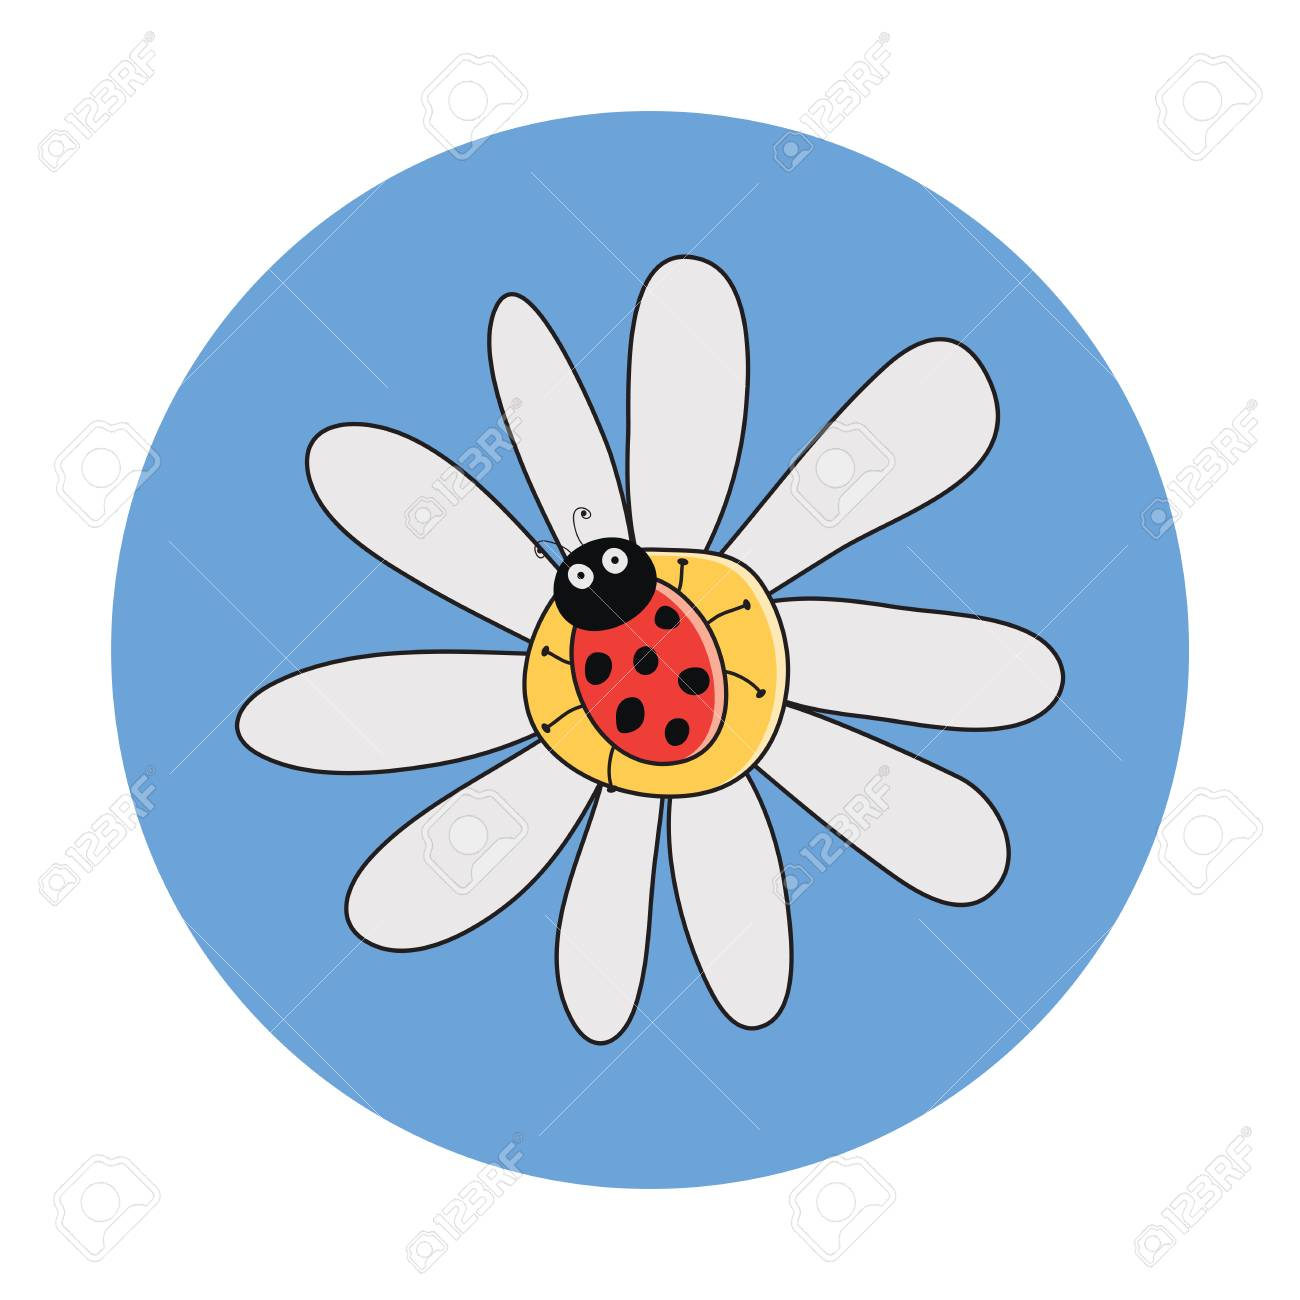 Vector drawing of red ladybird on a camomile flower ladybug vector vector drawing of red ladybird on a camomile flower ladybug cartoon on daisy flowerte dotted lady bug summer illustration izmirmasajfo